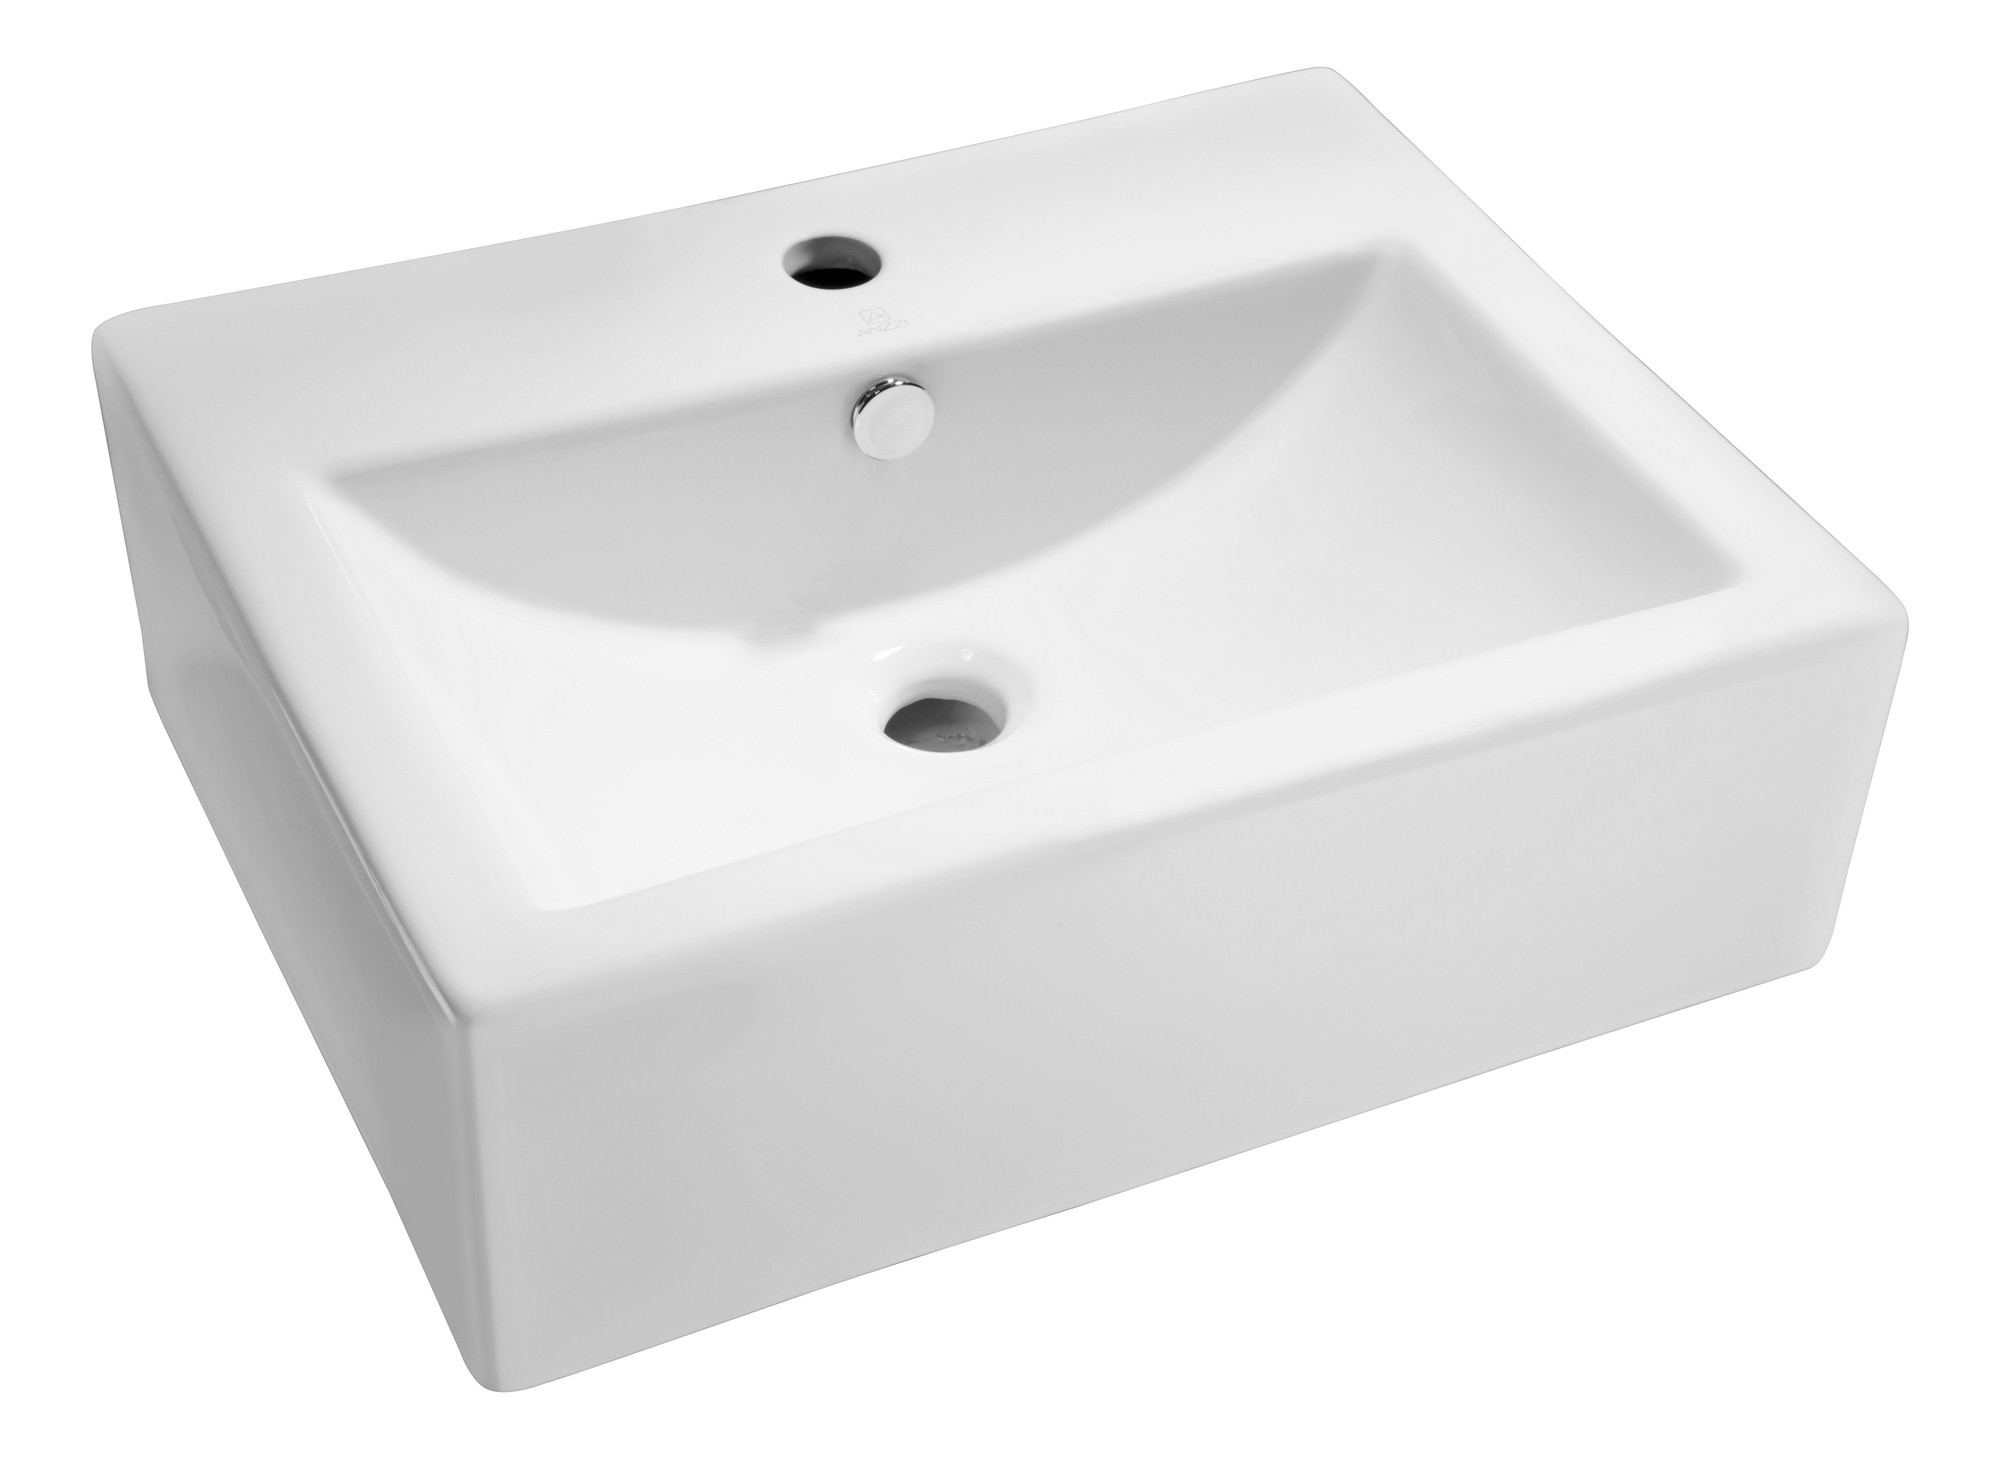 ANZZI LS-AZ130 Vitruvius Series Vitreous China Ceramic Vessel Sink In White